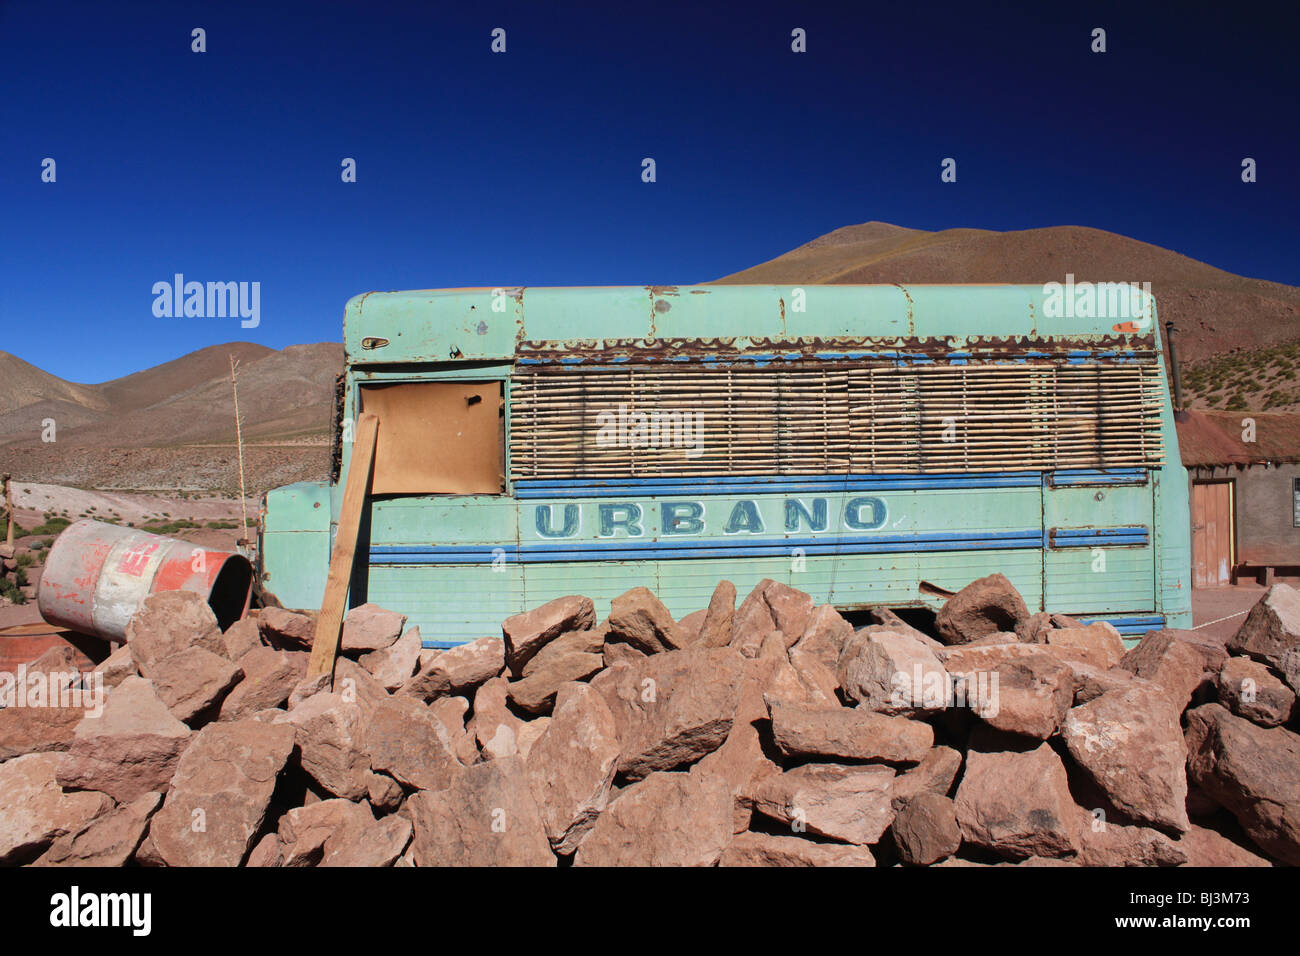 abandoned bus, Machuca, Altiplano, Chile - Stock Image